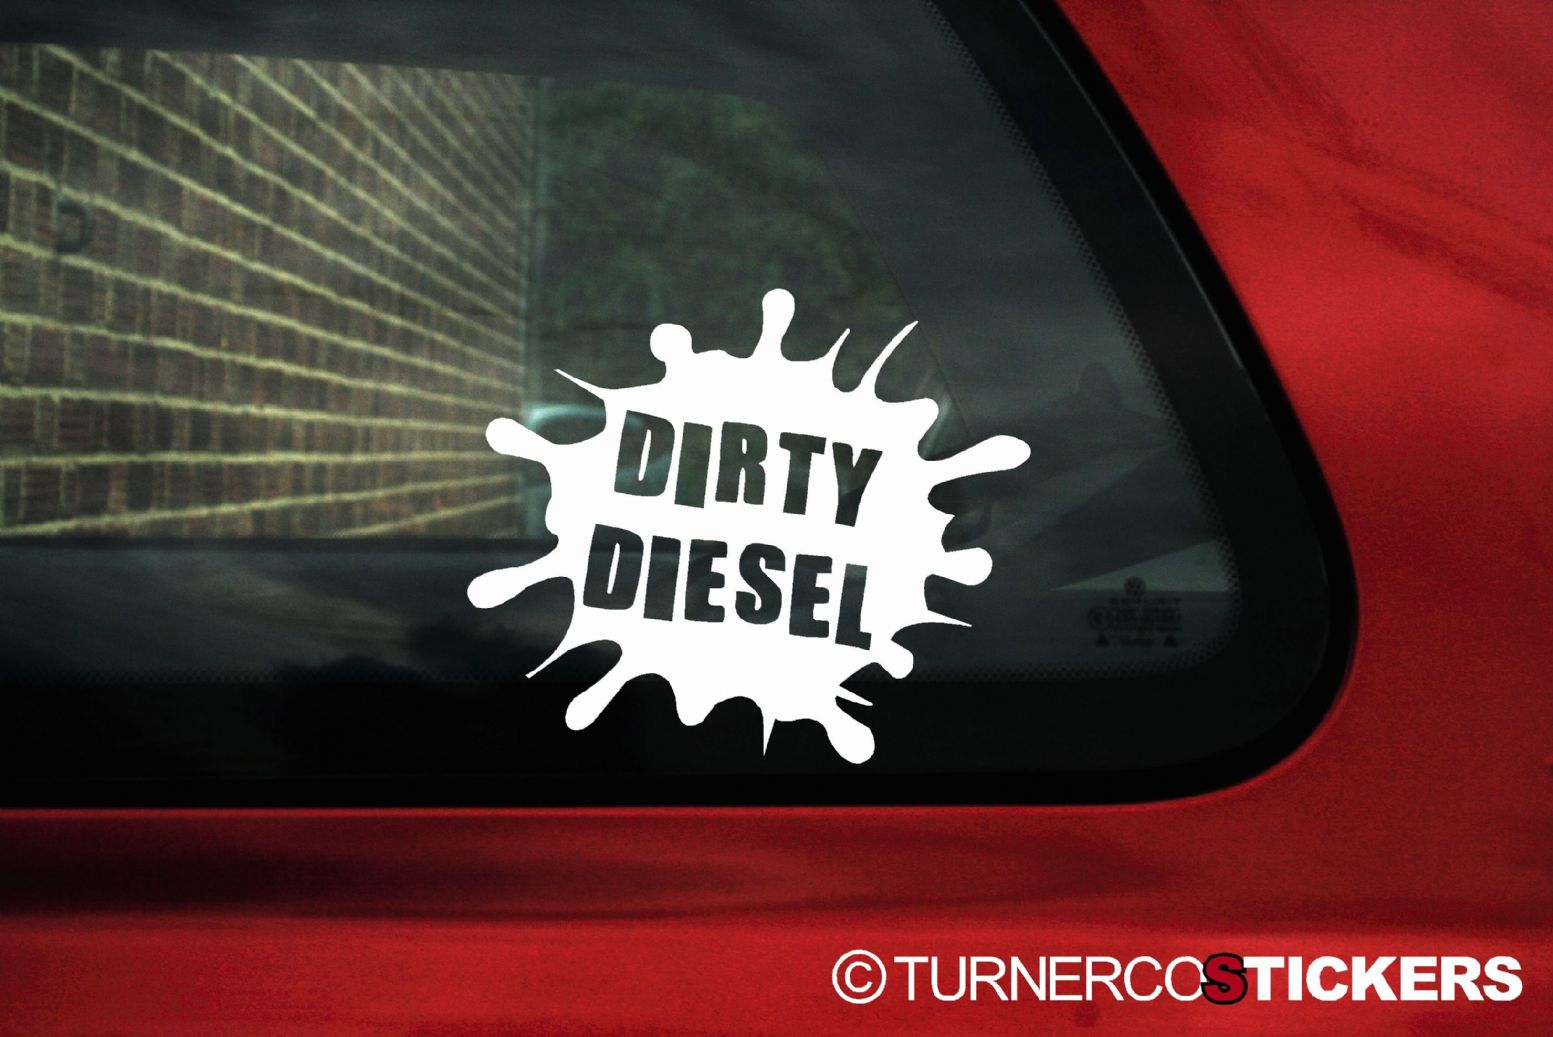 Dirty diesel funny sticker decal ideal for vw bora lupo golf mk4 passat tdi gtd turbo diesel